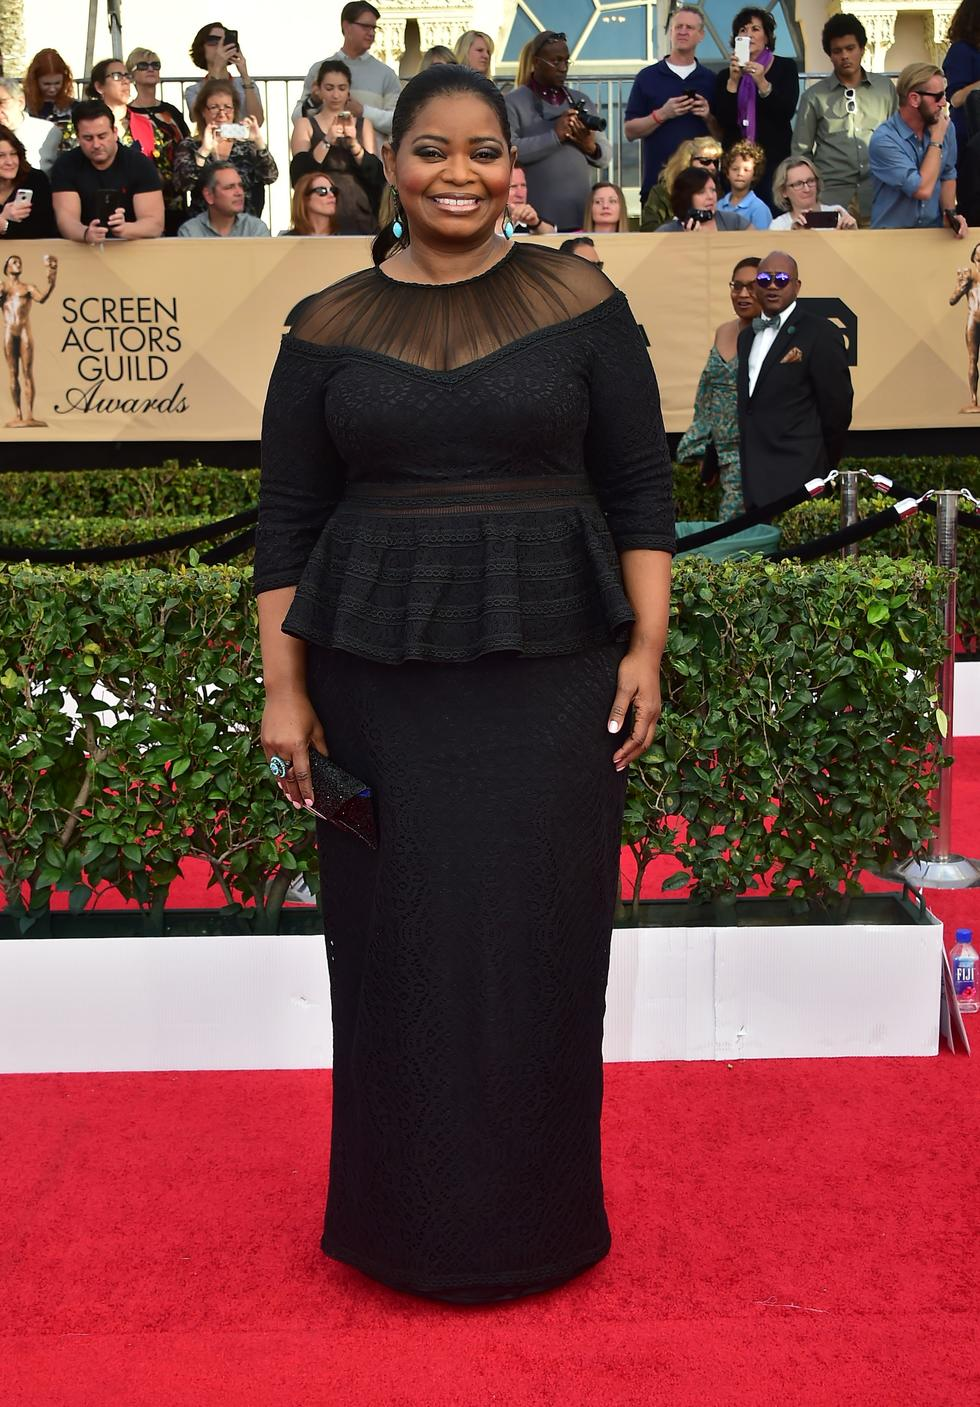 Actress Octavia Spencer at The Annual Screen Actors Guild Awards in an Adashi Shoji gown